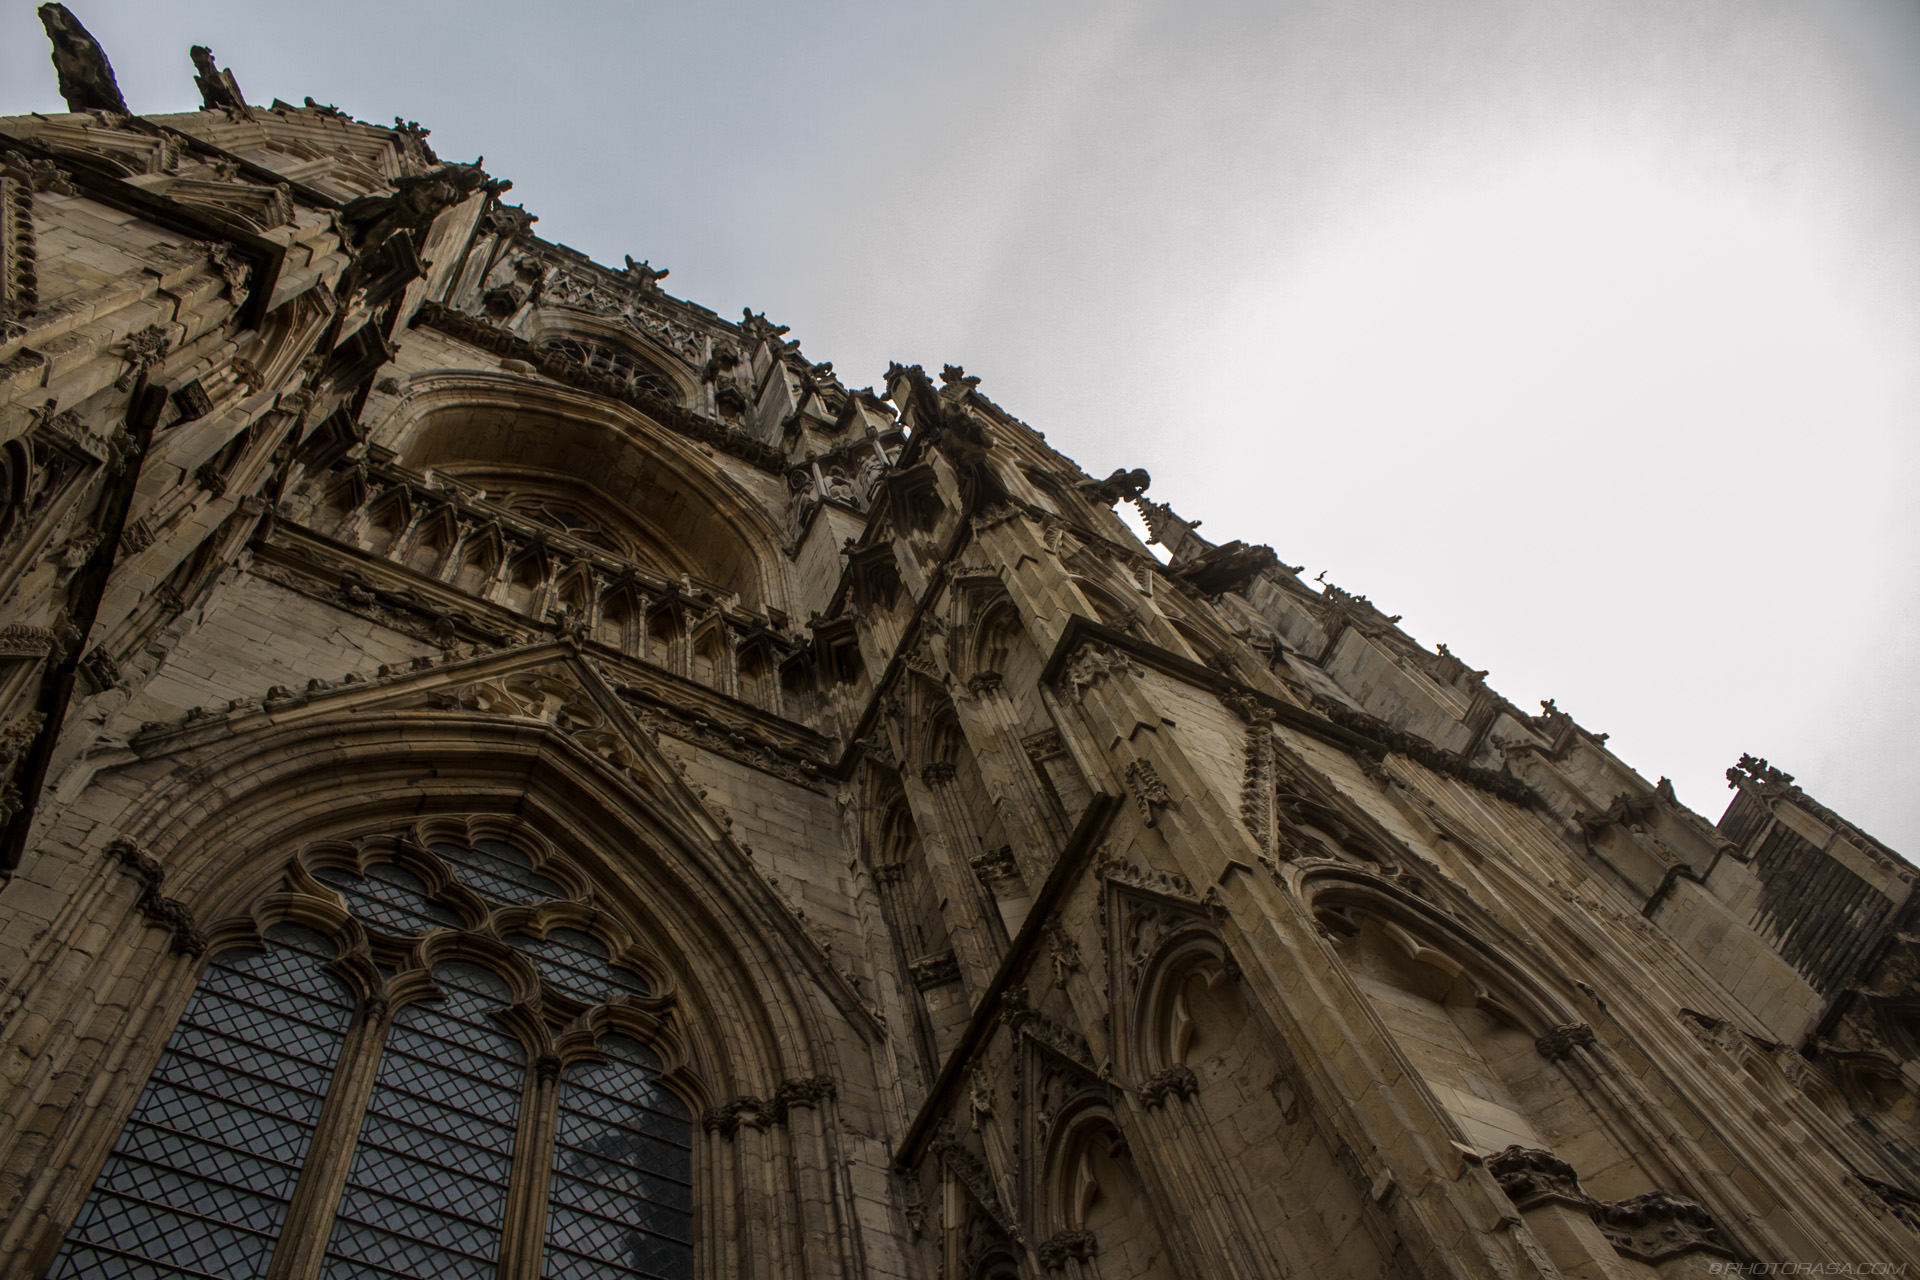 https://photorasa.com/yorkminster-cathedral/cathedral-detail-and-sky/